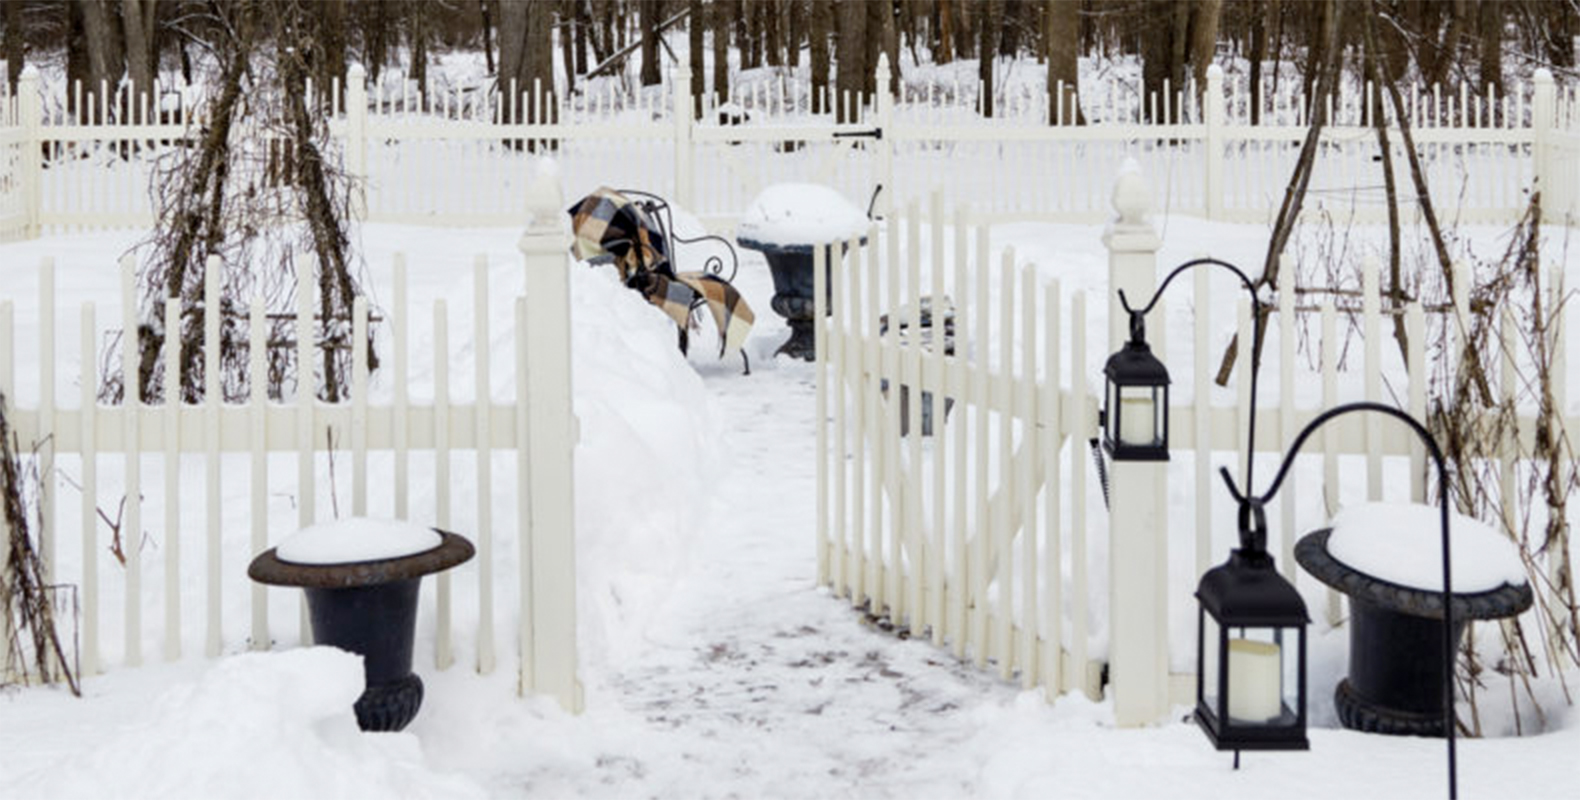 snowy yard with white gate